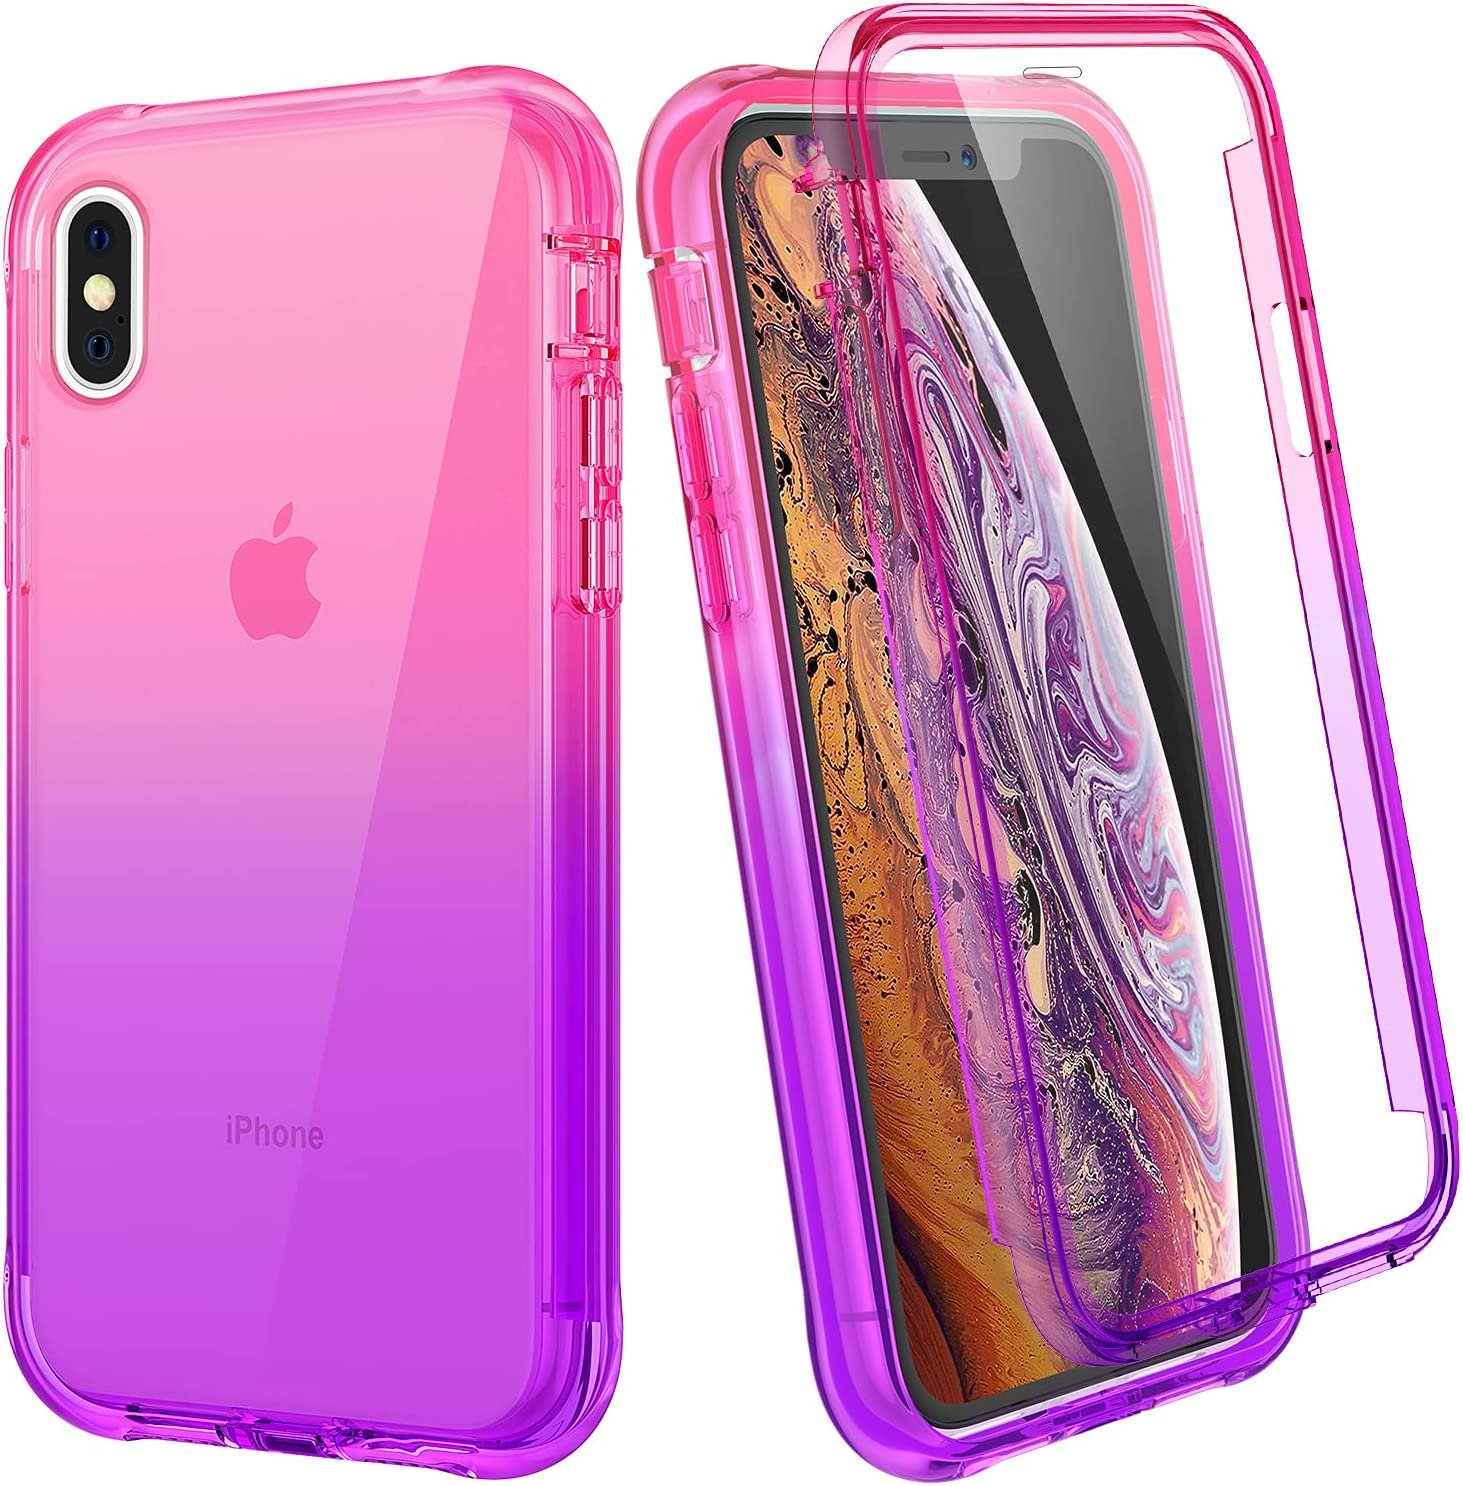 Ruky iPhone Xs Max Case, iPhone Xs Max Full Body Rugged Cover with Built-in Screen Protector Soft TPU Bumper Heavy Duty Shockproof Protective Clear Girls Women Case for iPhone Xs Max, Pink Purple